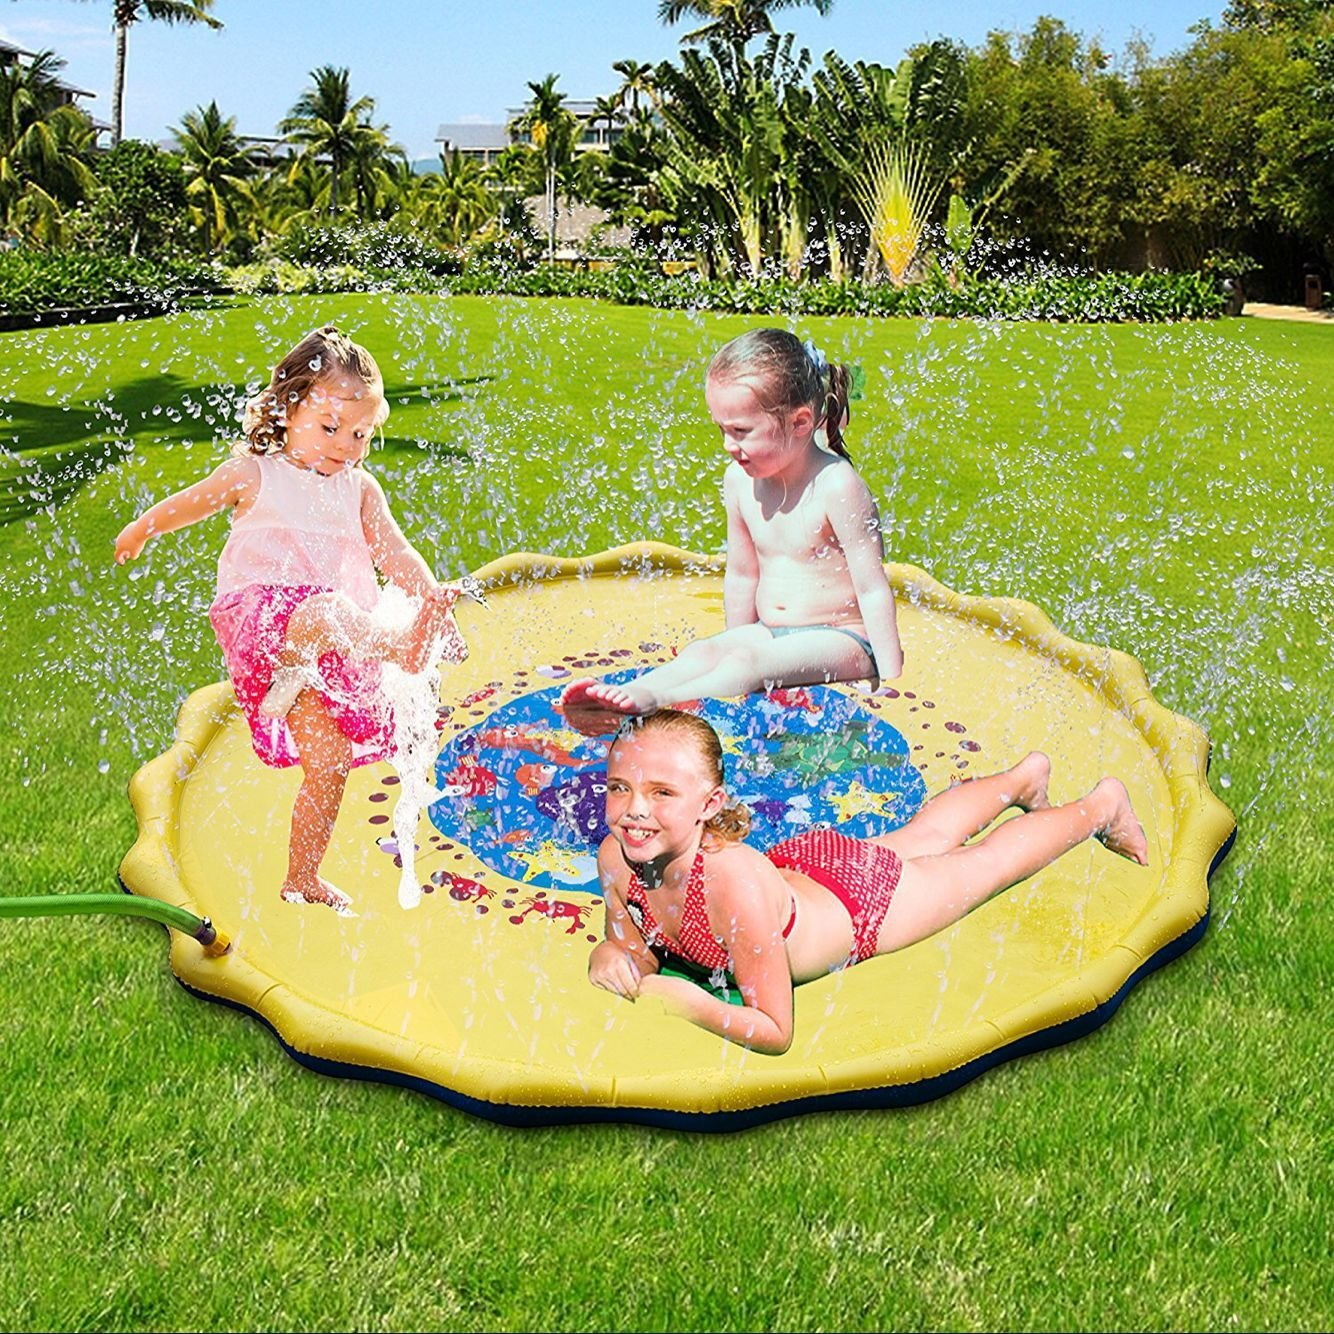 Jaeounr Splash Play Mat 67in-Diameter Perfect Inflatable Outdoor Sprinkler Pad Summer Fun Backyard Play for Infants Toddlers And Kids (67inches)